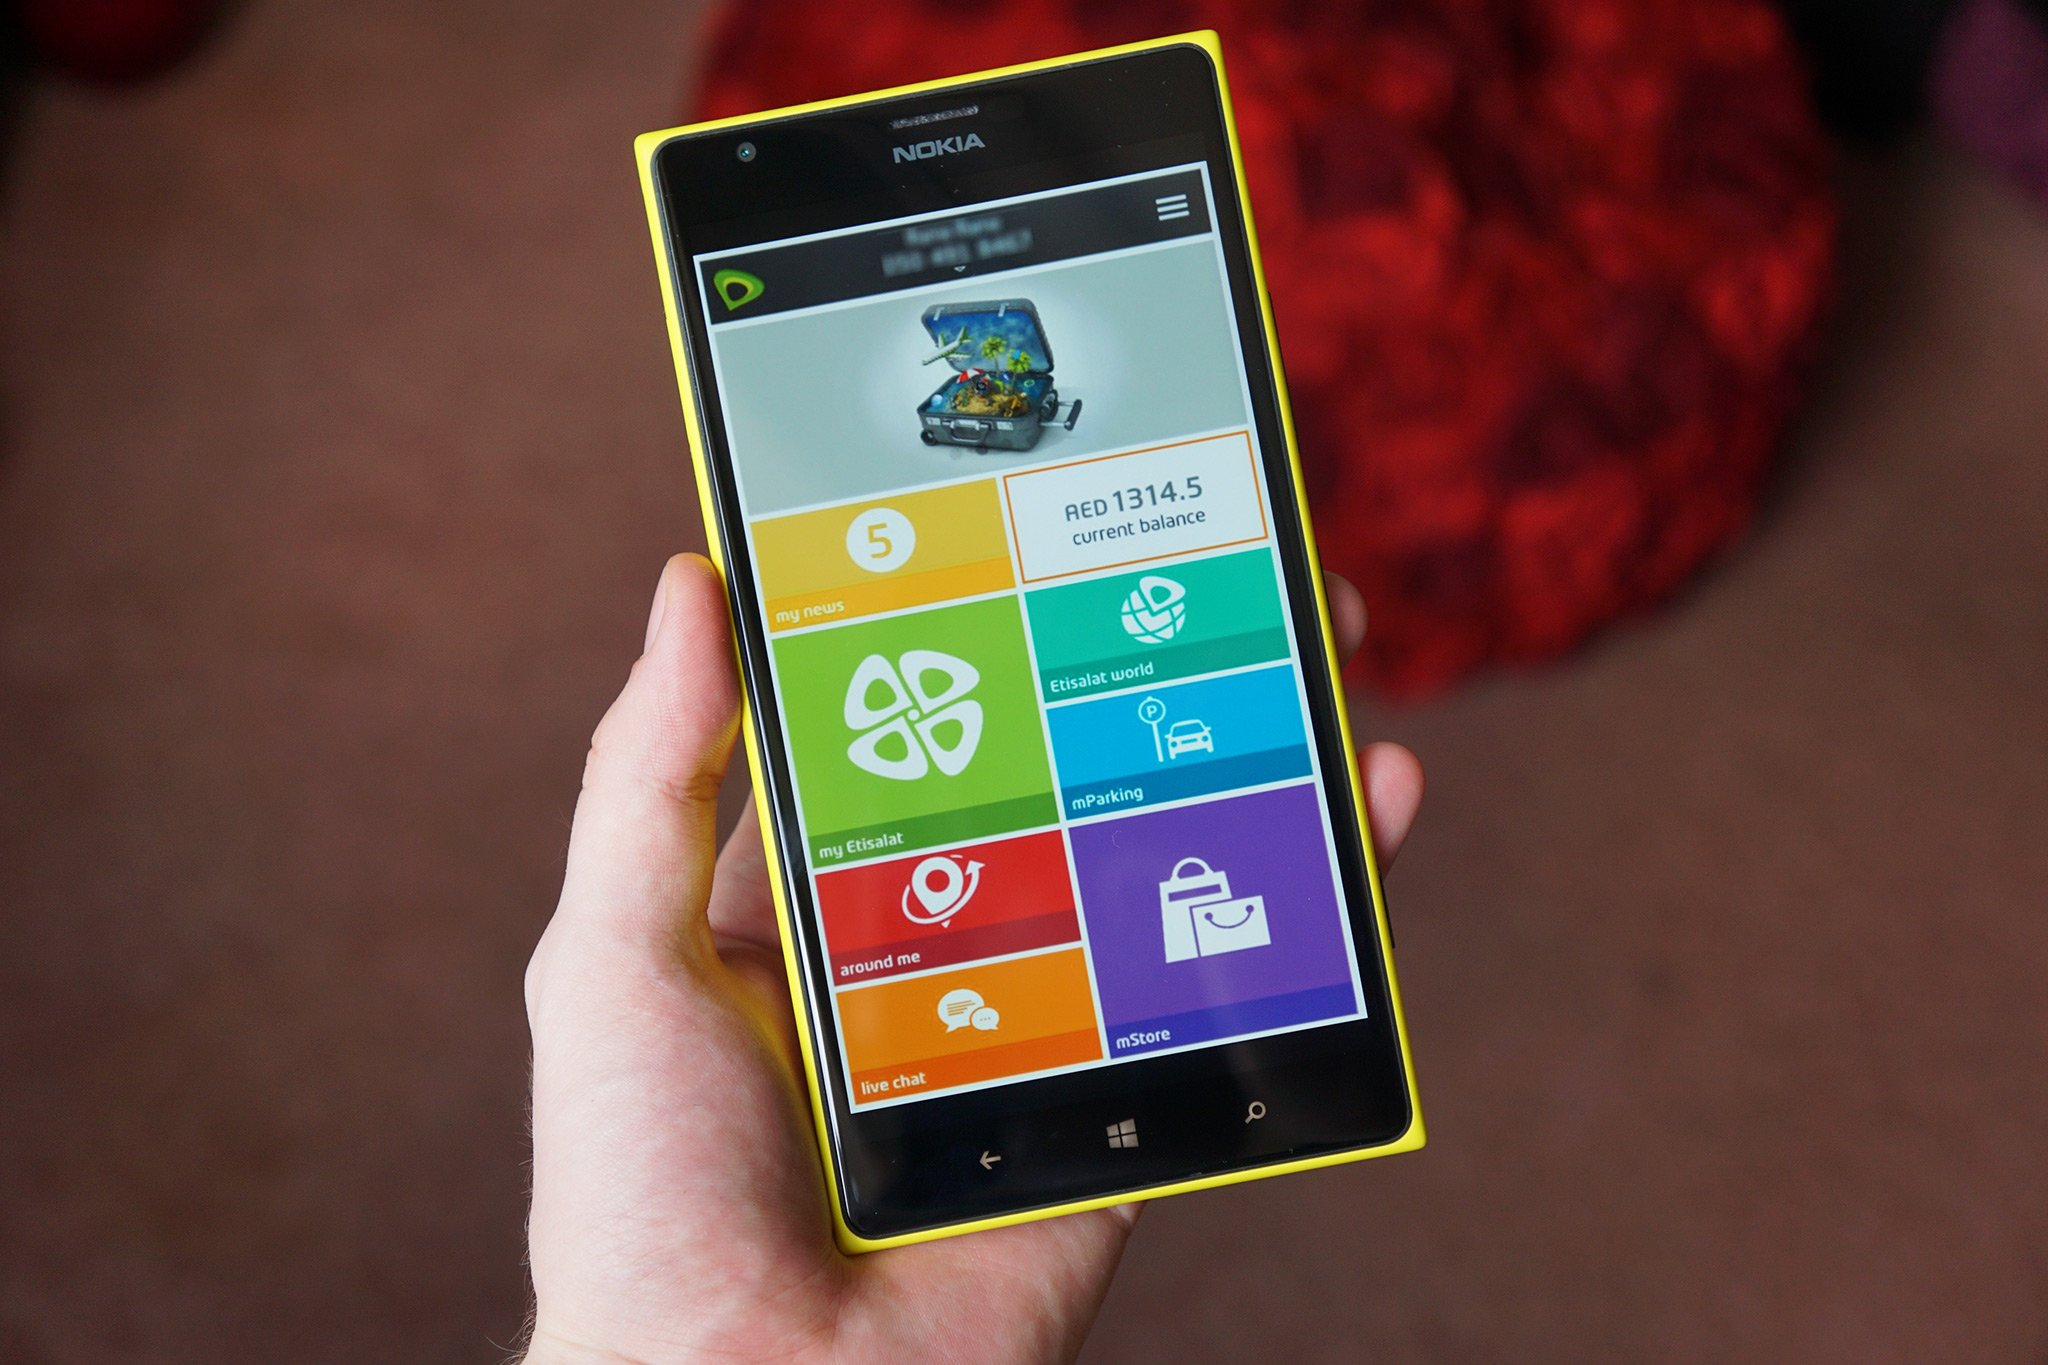 Mettsalat Uae Carrier Etisalat Shows Support For Windows Phone With Official